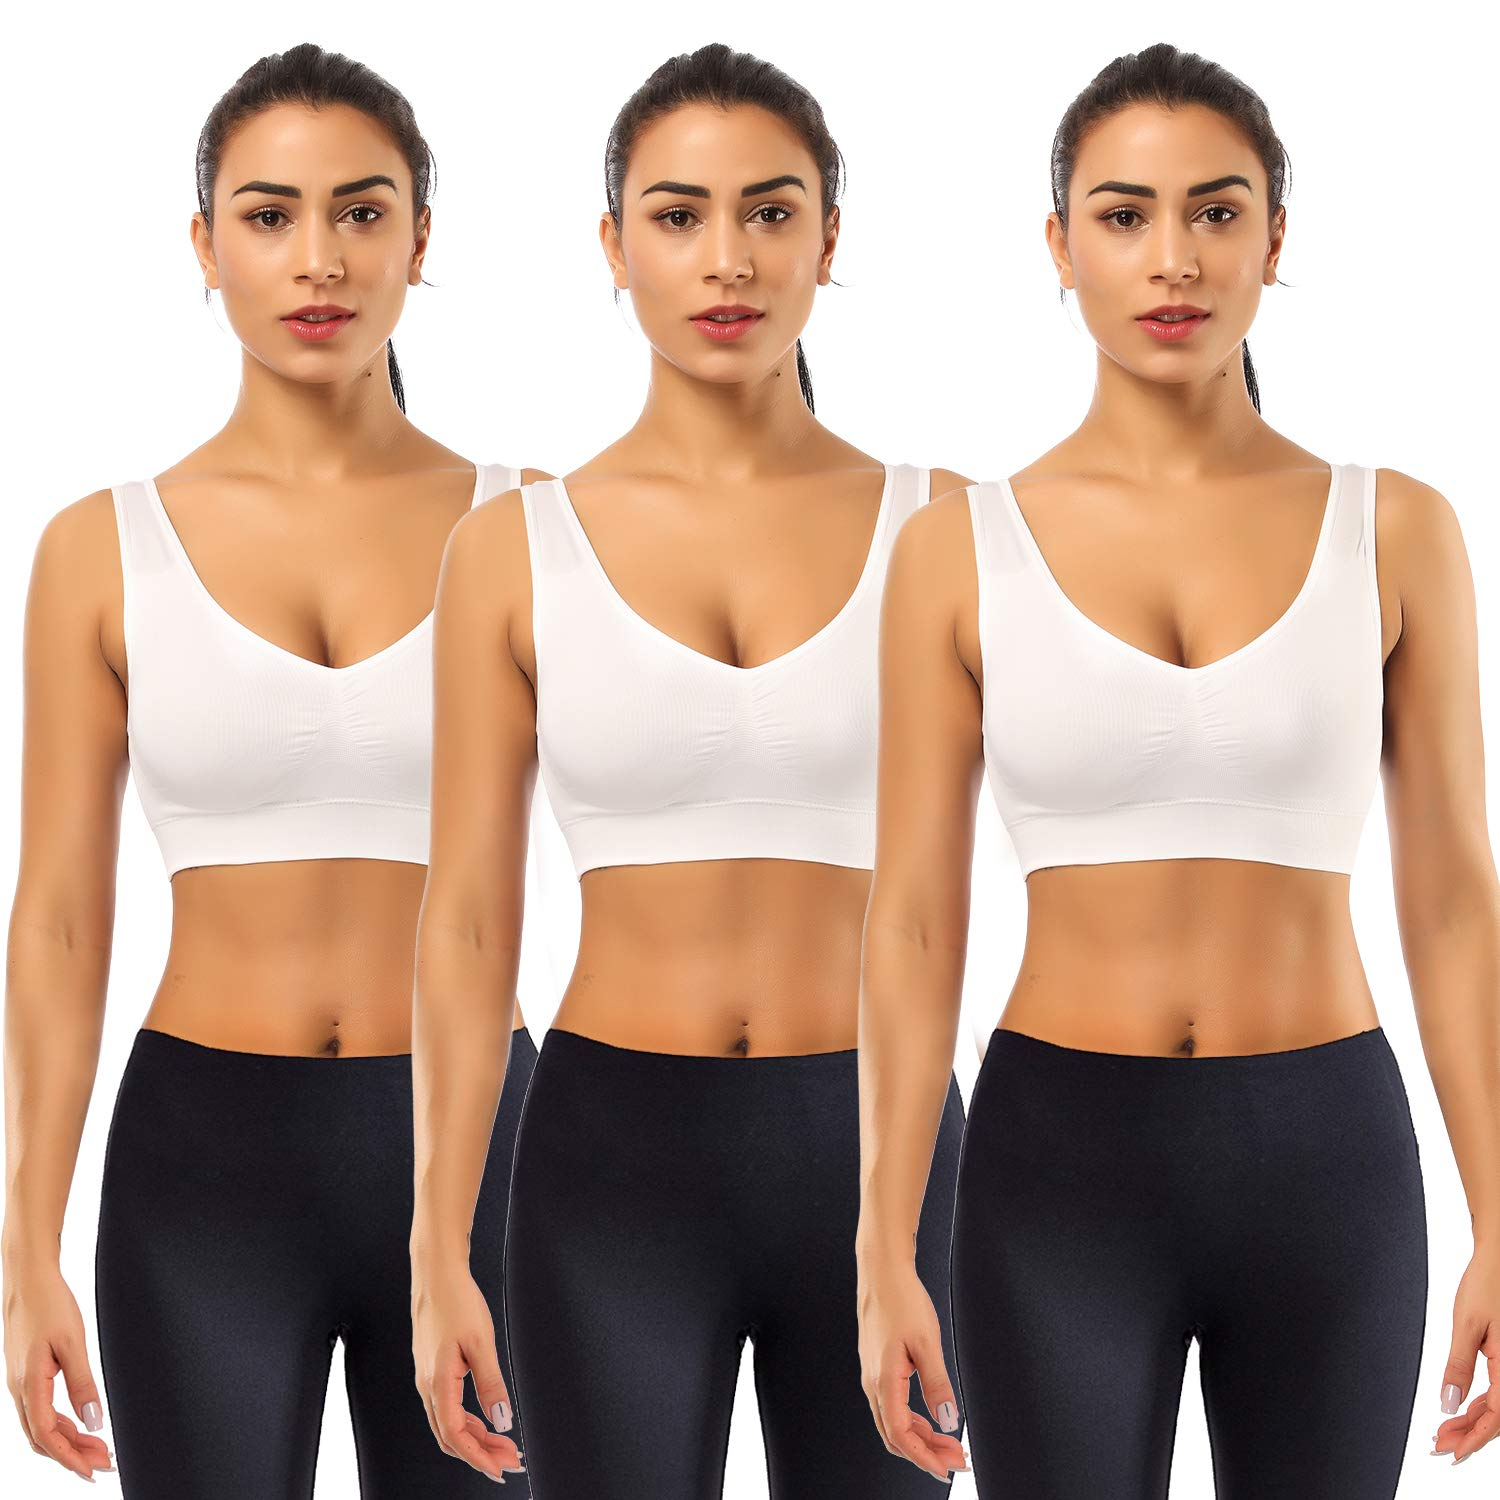 BESTENA Sports Bras for Women, 3 Pack Seamless Comfortable Yoga Bra with Removable Pads(White,Small)